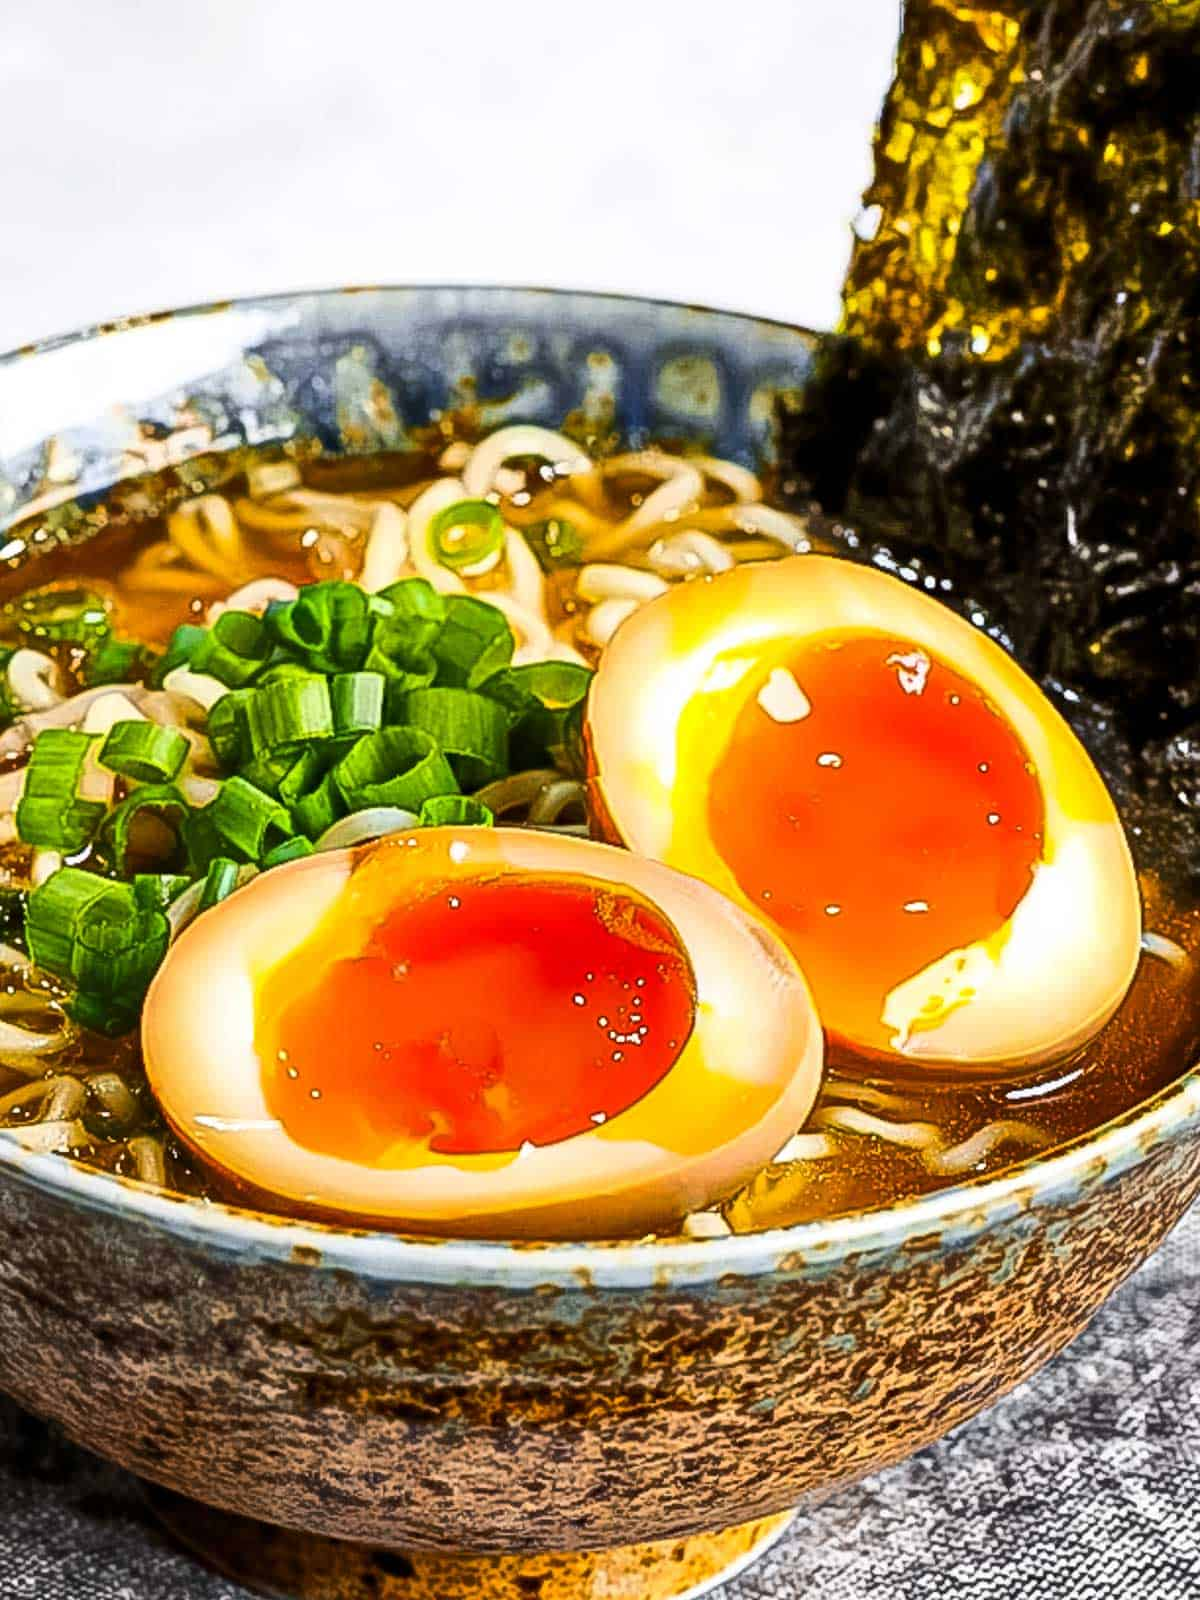 Ramen eggs (ajitama) marinated in soy sauce cut in half and placed on top of a bowl of ramen noodles garnished with green onions and nori.